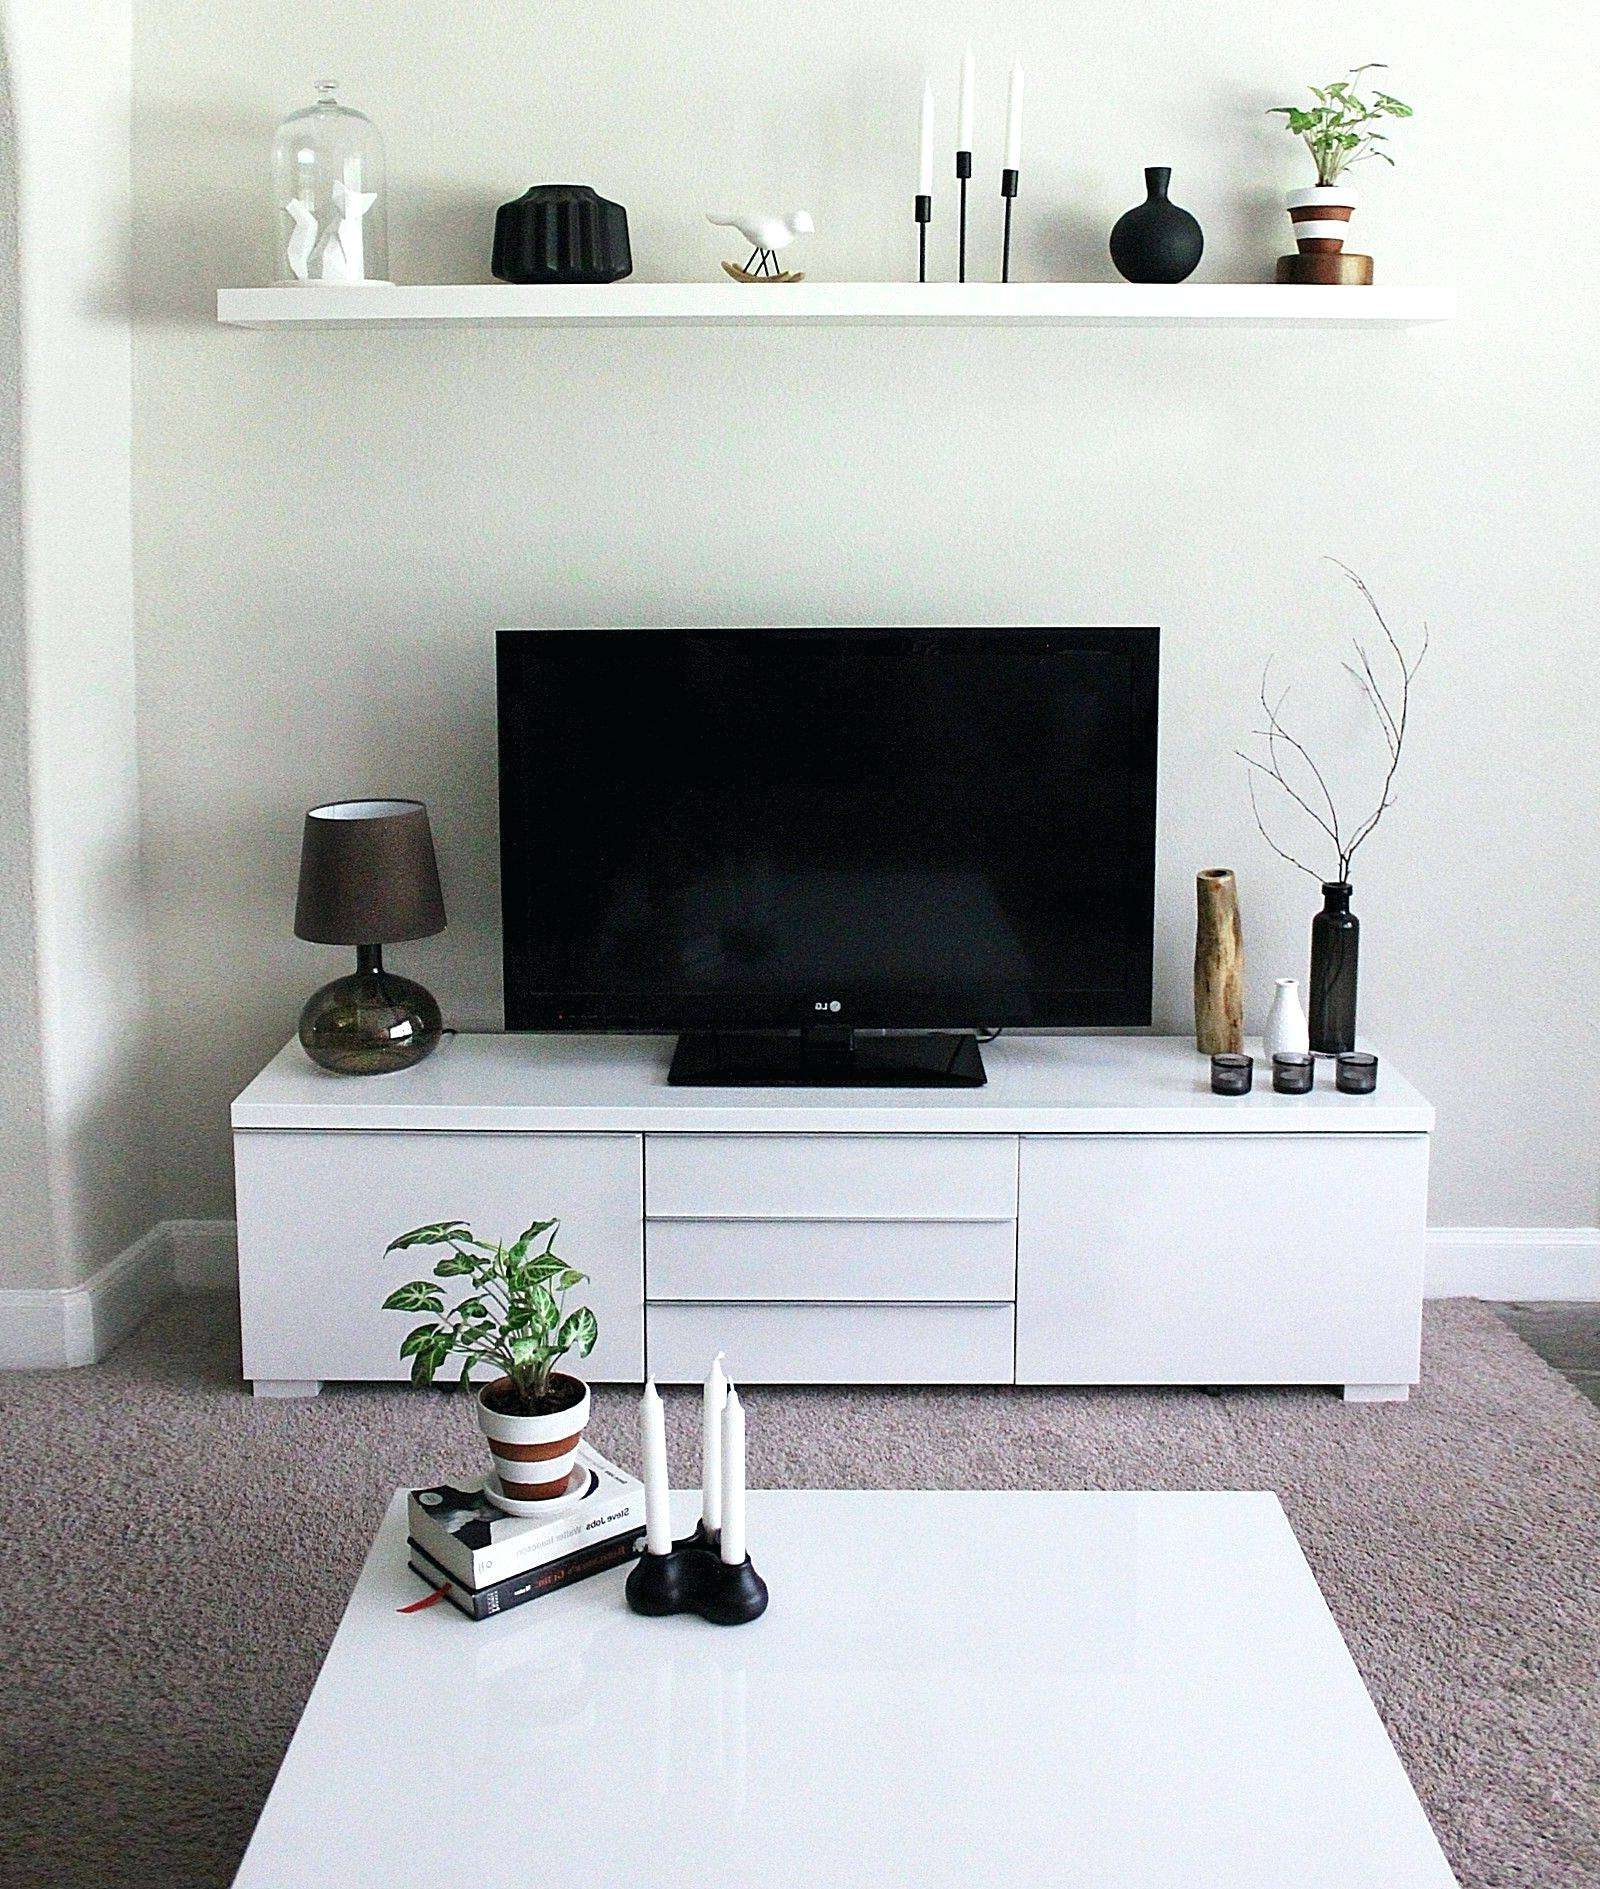 Tv Stand : Ikea Yellow Tv Stand Unit Gray Width 1 8 Depth Besta For Yellow Tv Stands Ikea (View 18 of 20)